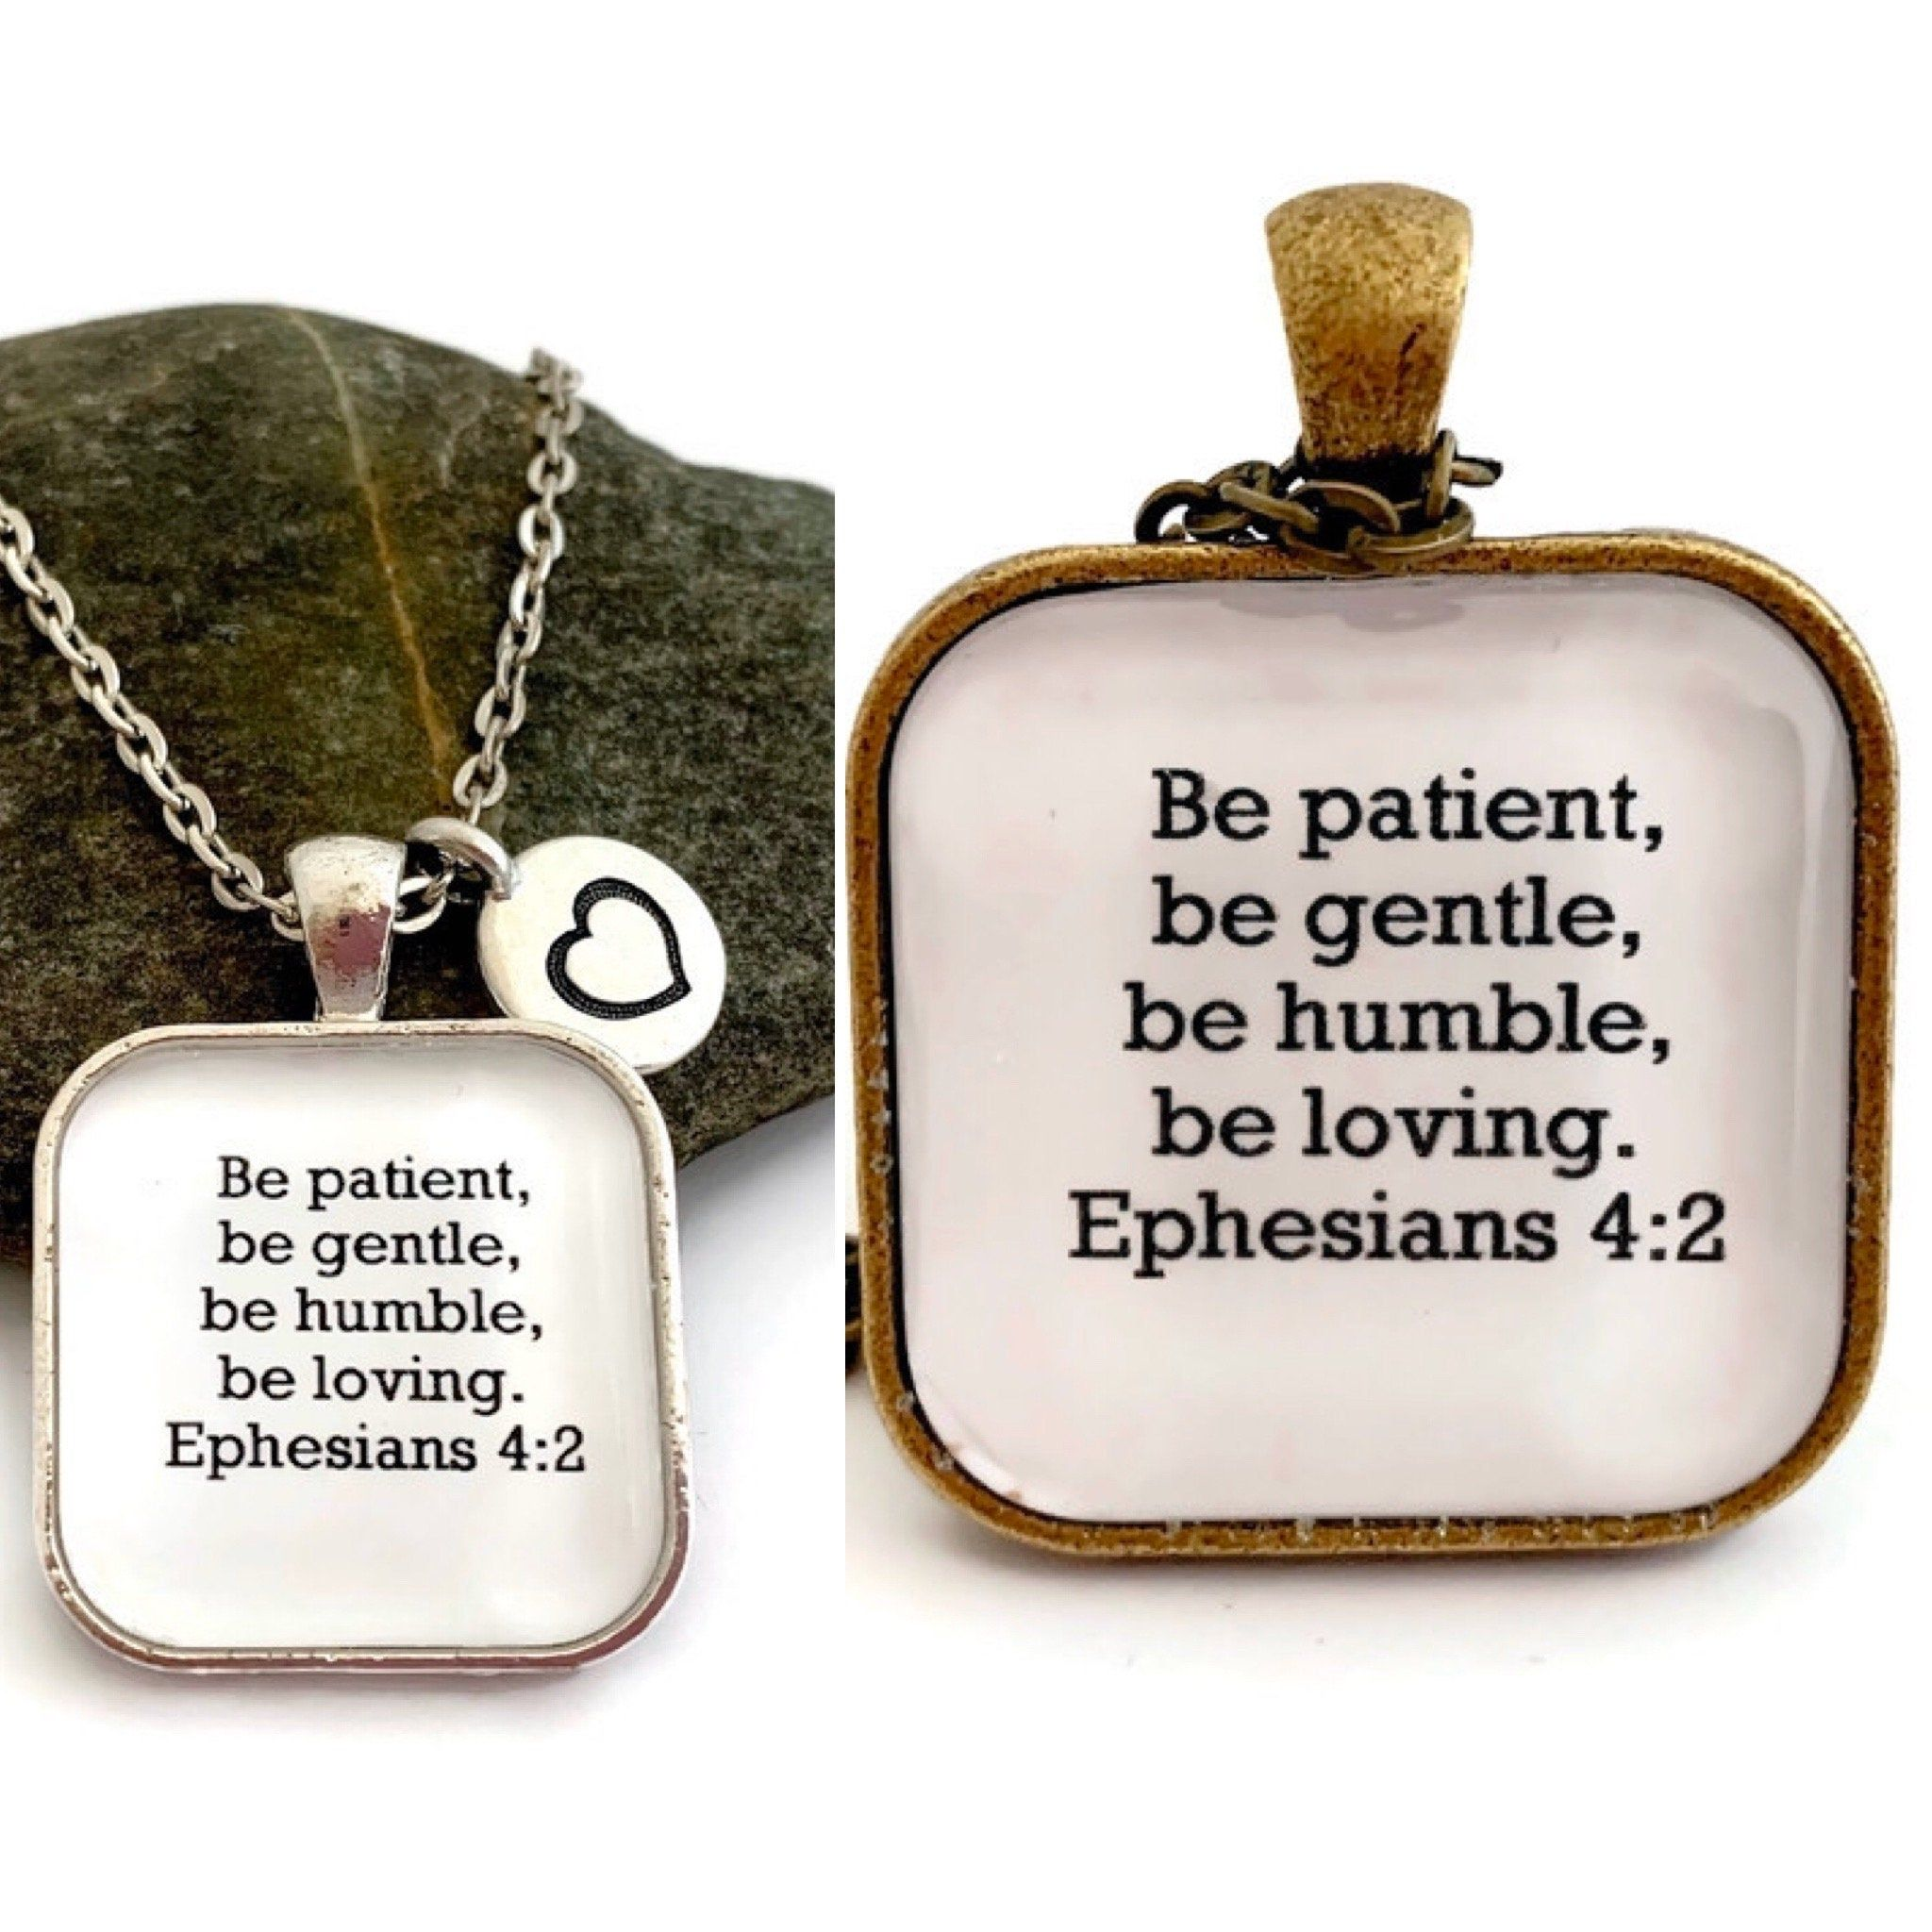 Ephesians 42 inspirational quote necklace christian